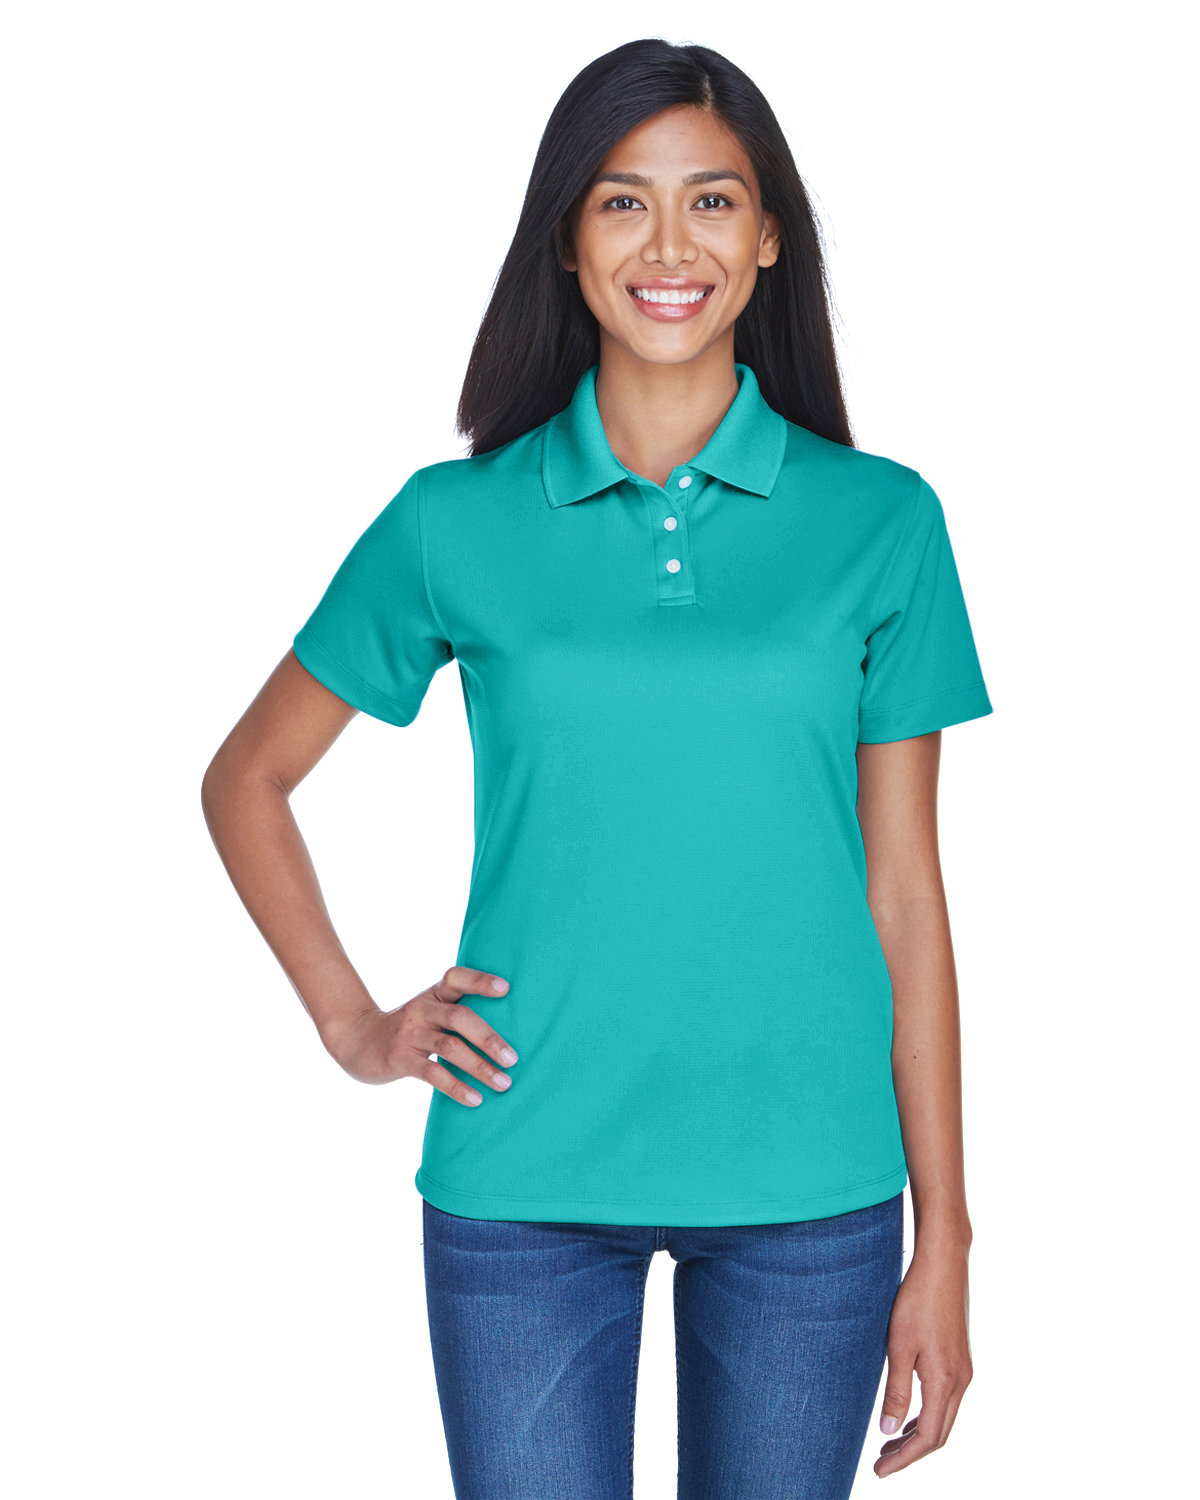 UltraClub Ladies' Cool & Dry Stain-Release Performance Polo JADE